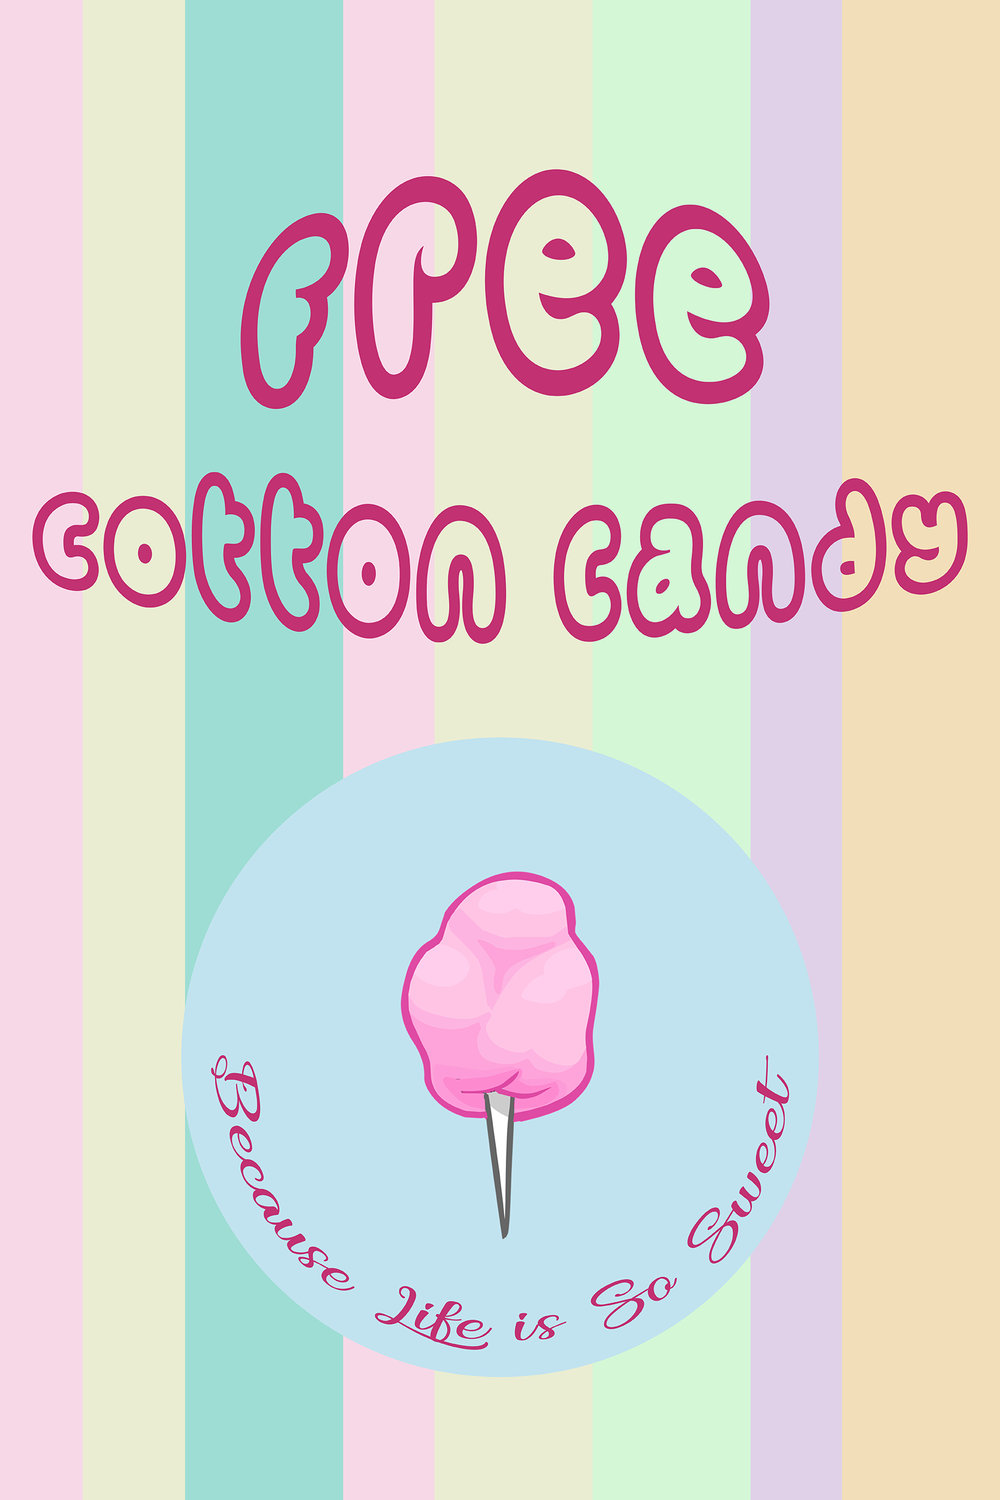 Spin, Roll & Enjoy  We have a cotton candy machine at Stoneham location! Please enjoy free cotton candy after your delicious meal :)  -